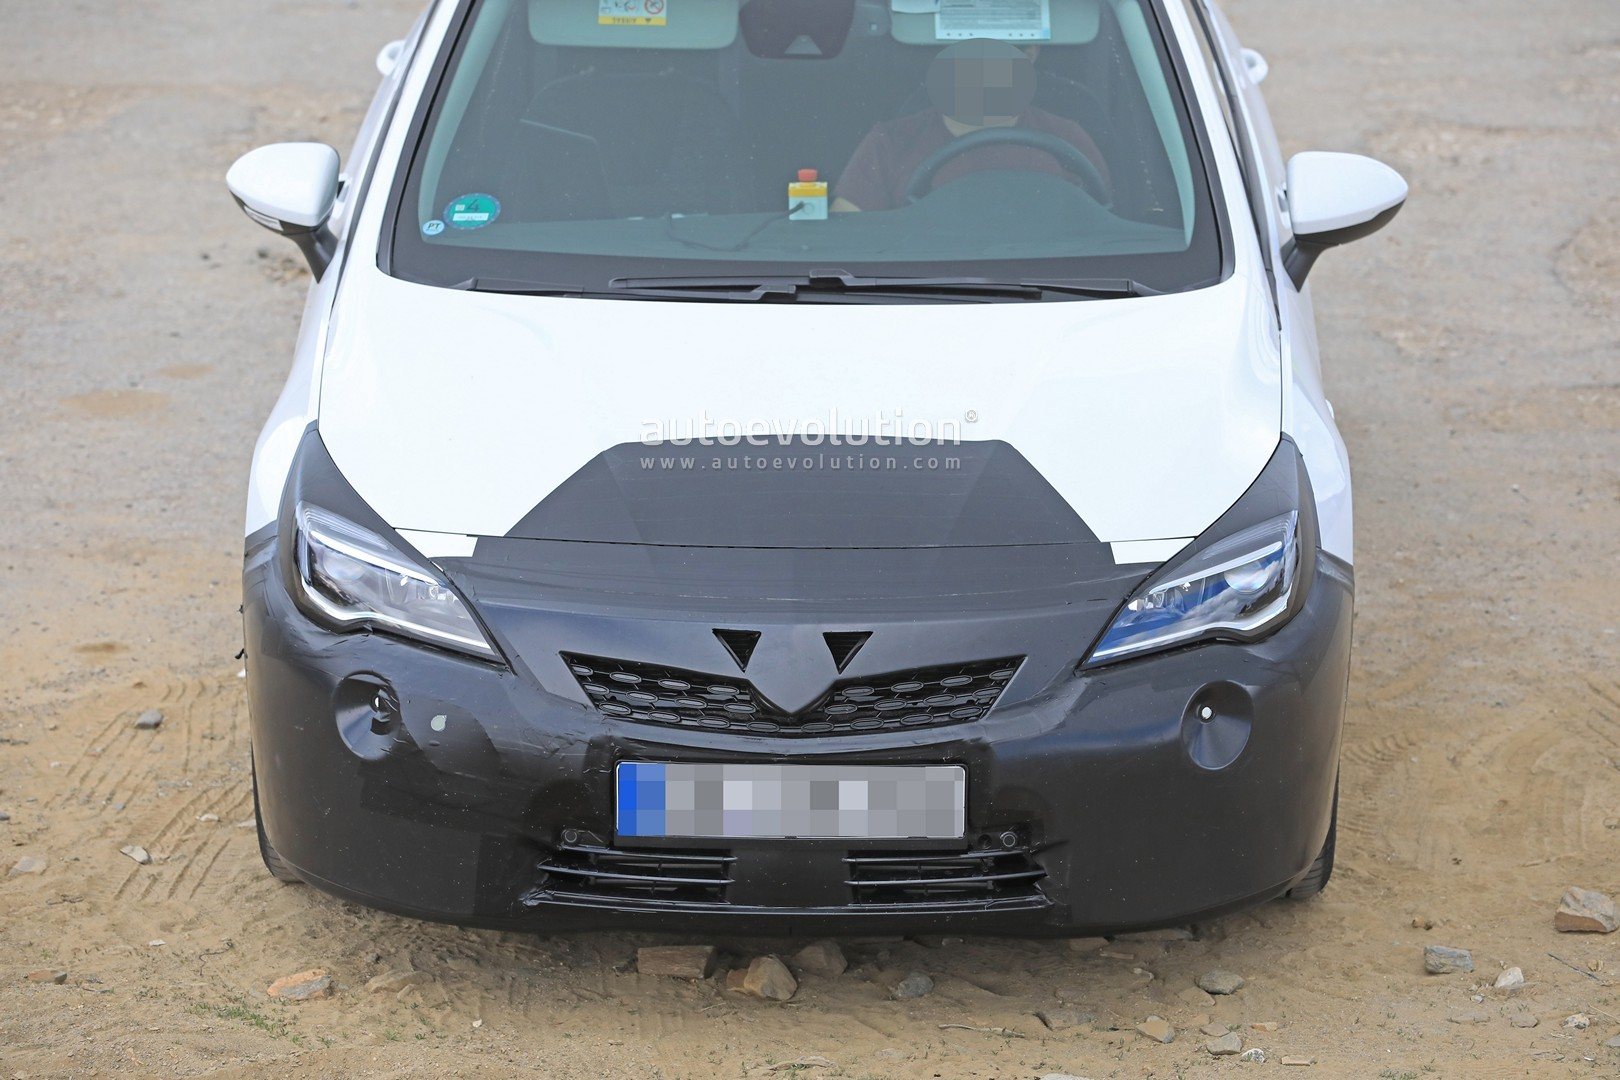 2019 Opel Astra Facelift Spied Doing Some Towing